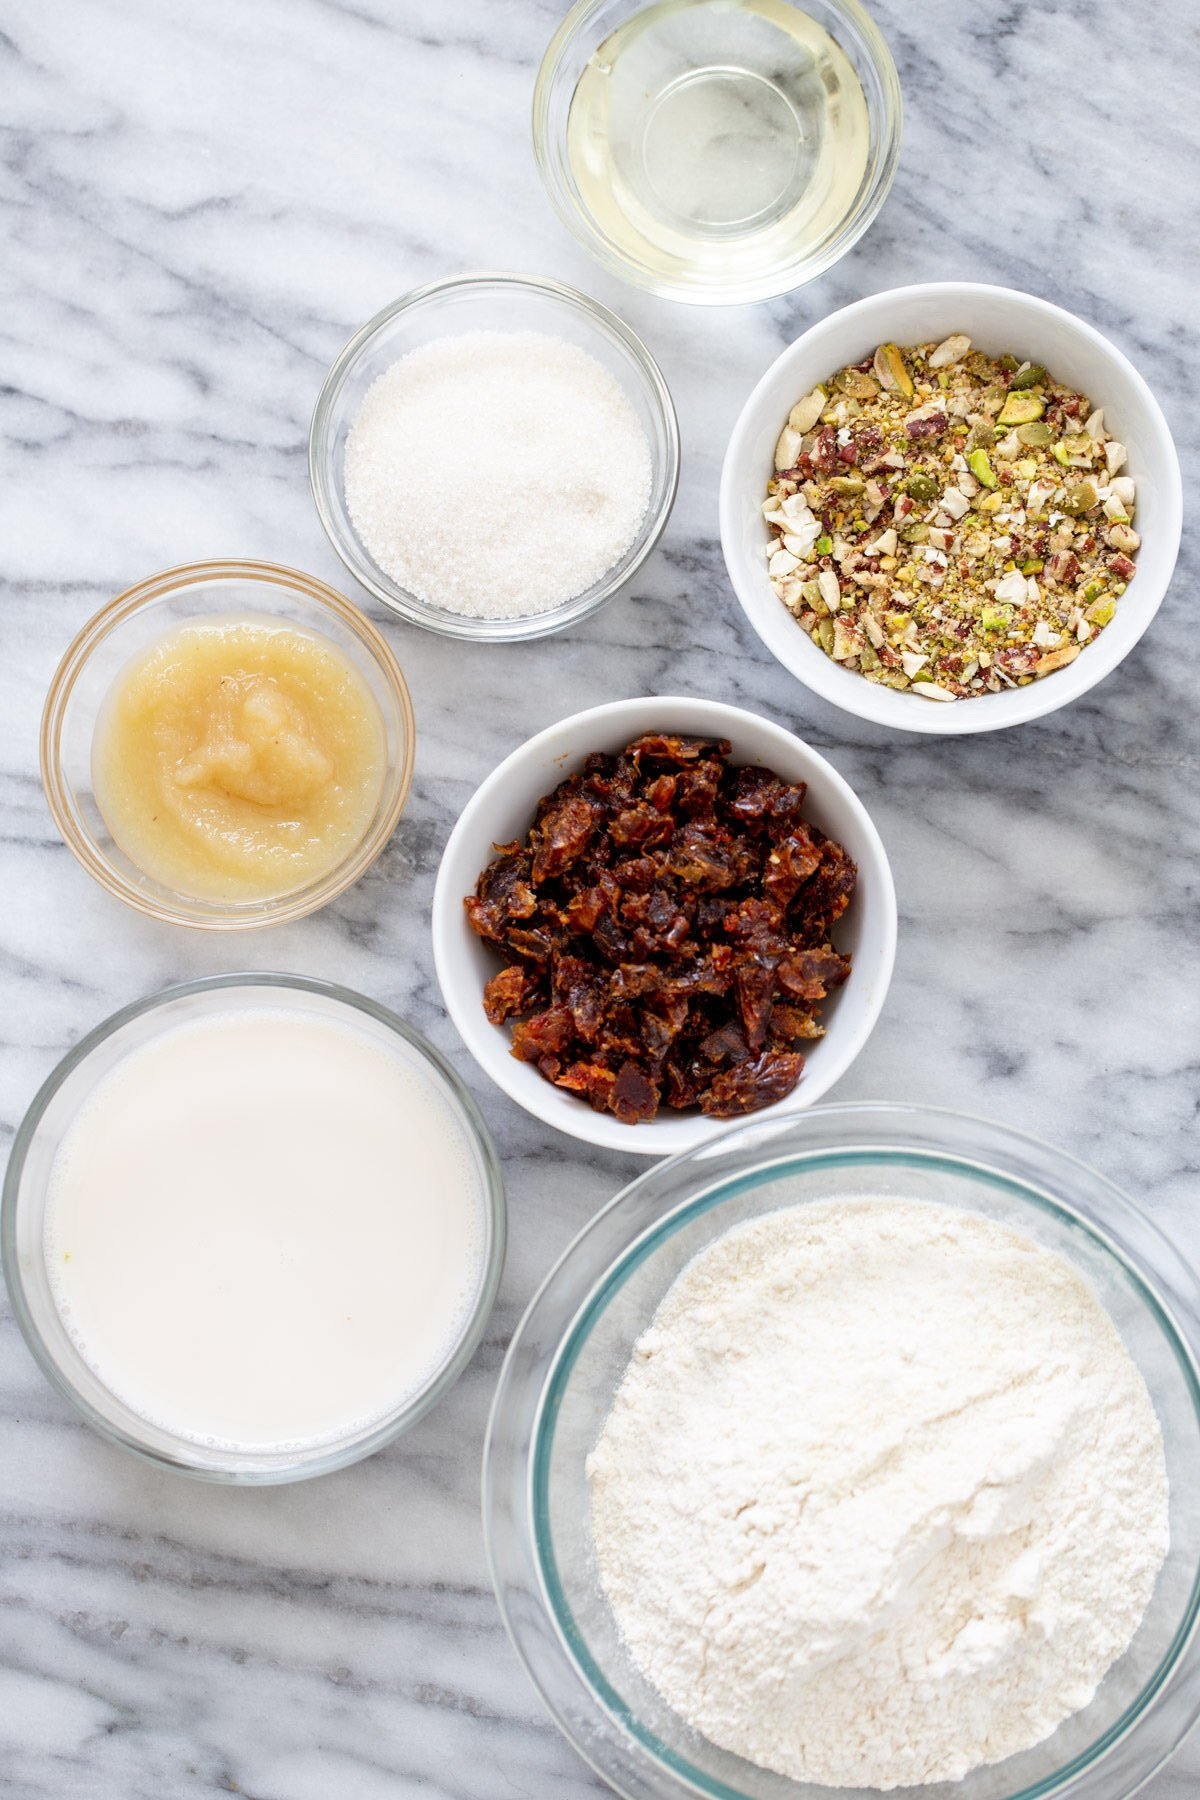 ingredients for vegan date nut cake on a marble countertop